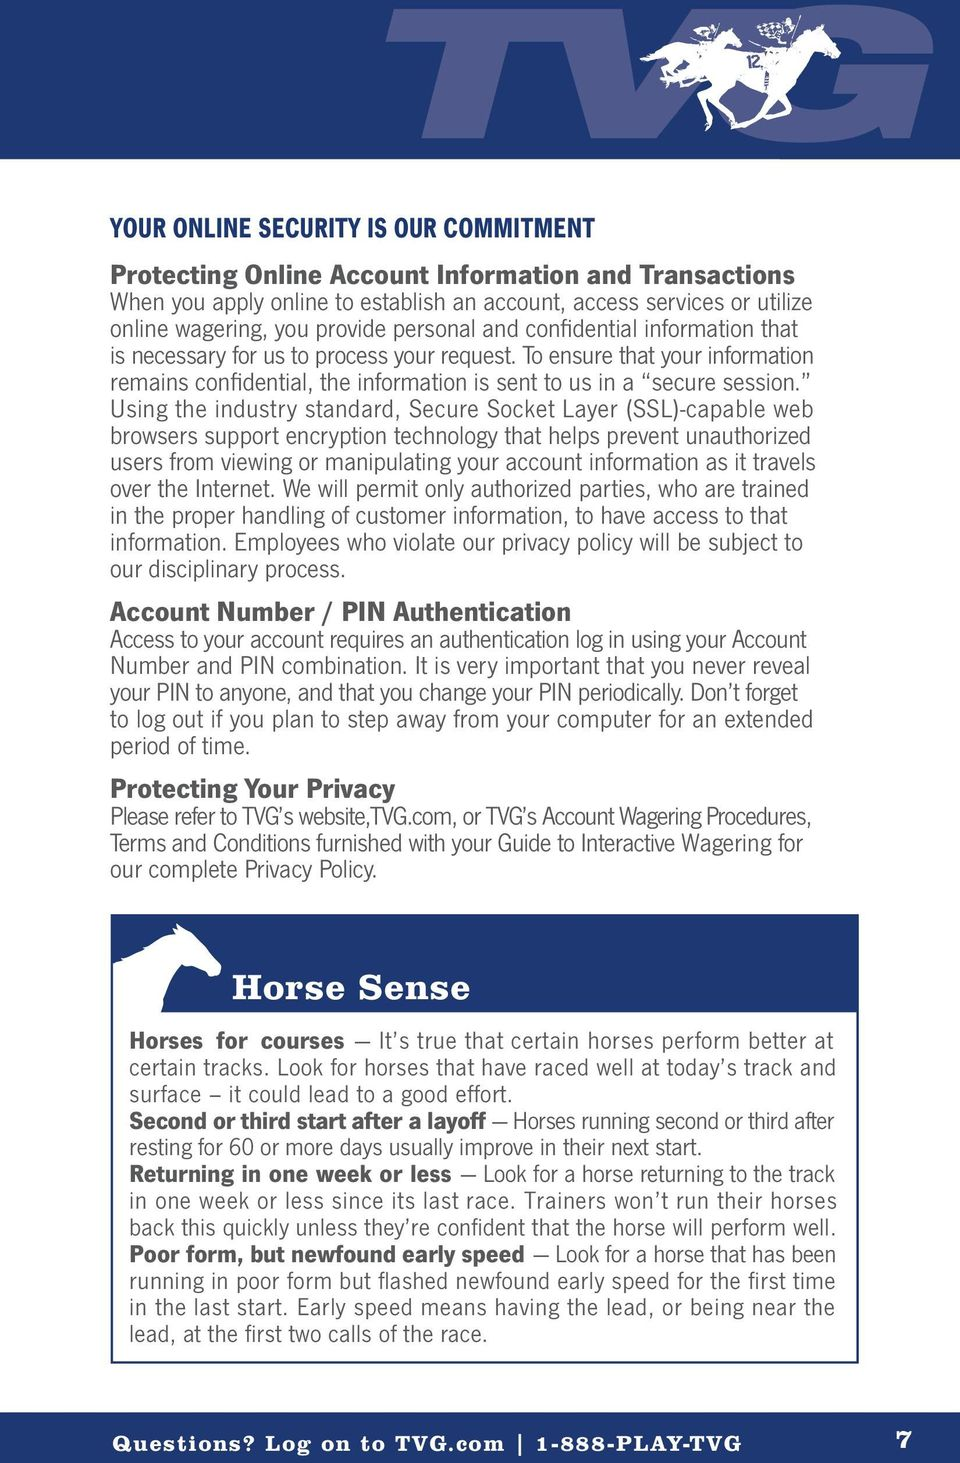 guide to interactive wagering pdf rh docplayer net Twin Spires Wagering Horse Racing Wagering